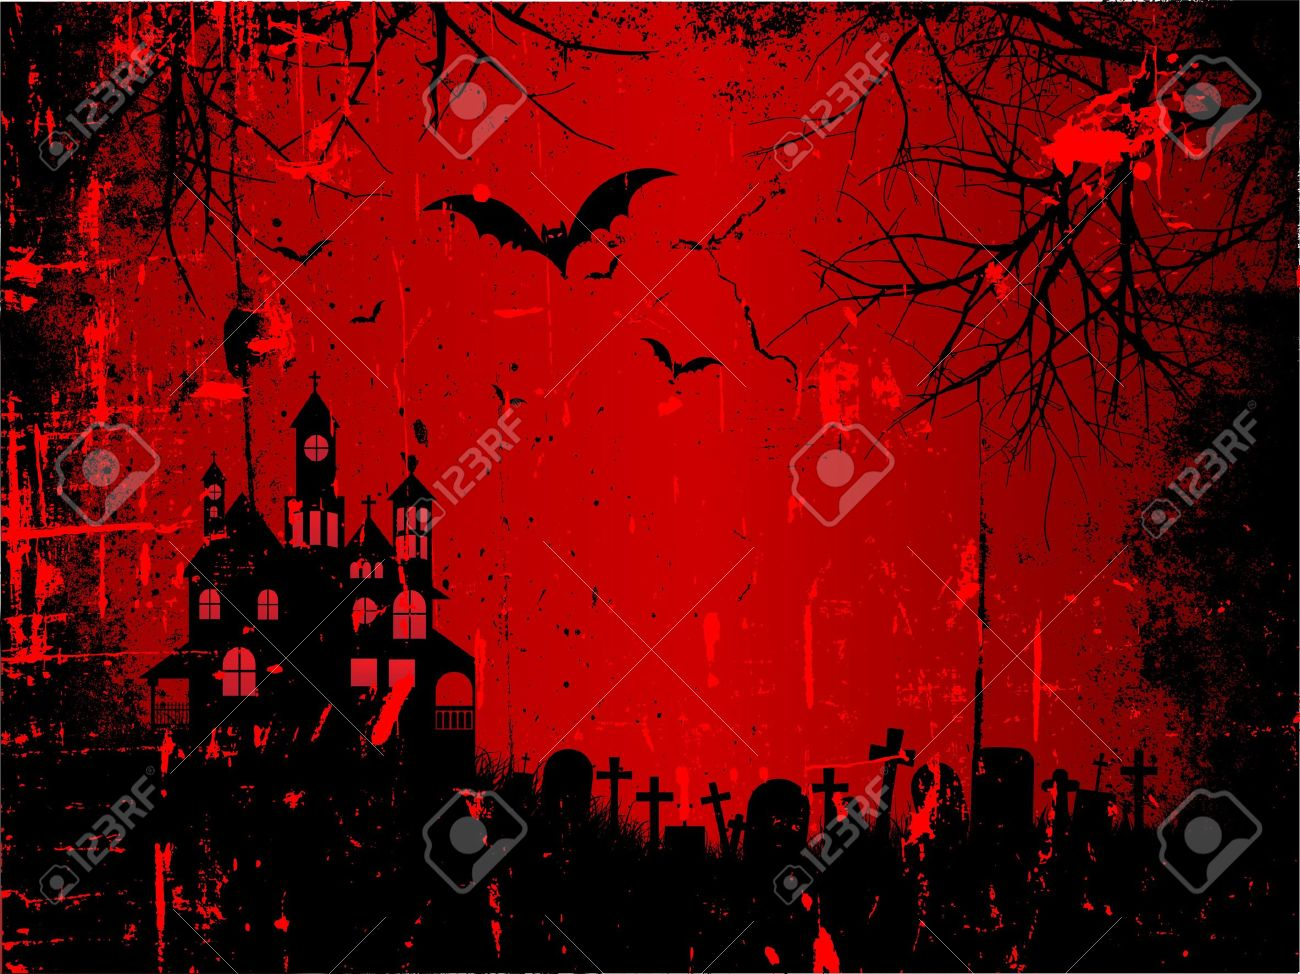 spooky halloween background with a grunge style effect royalty free